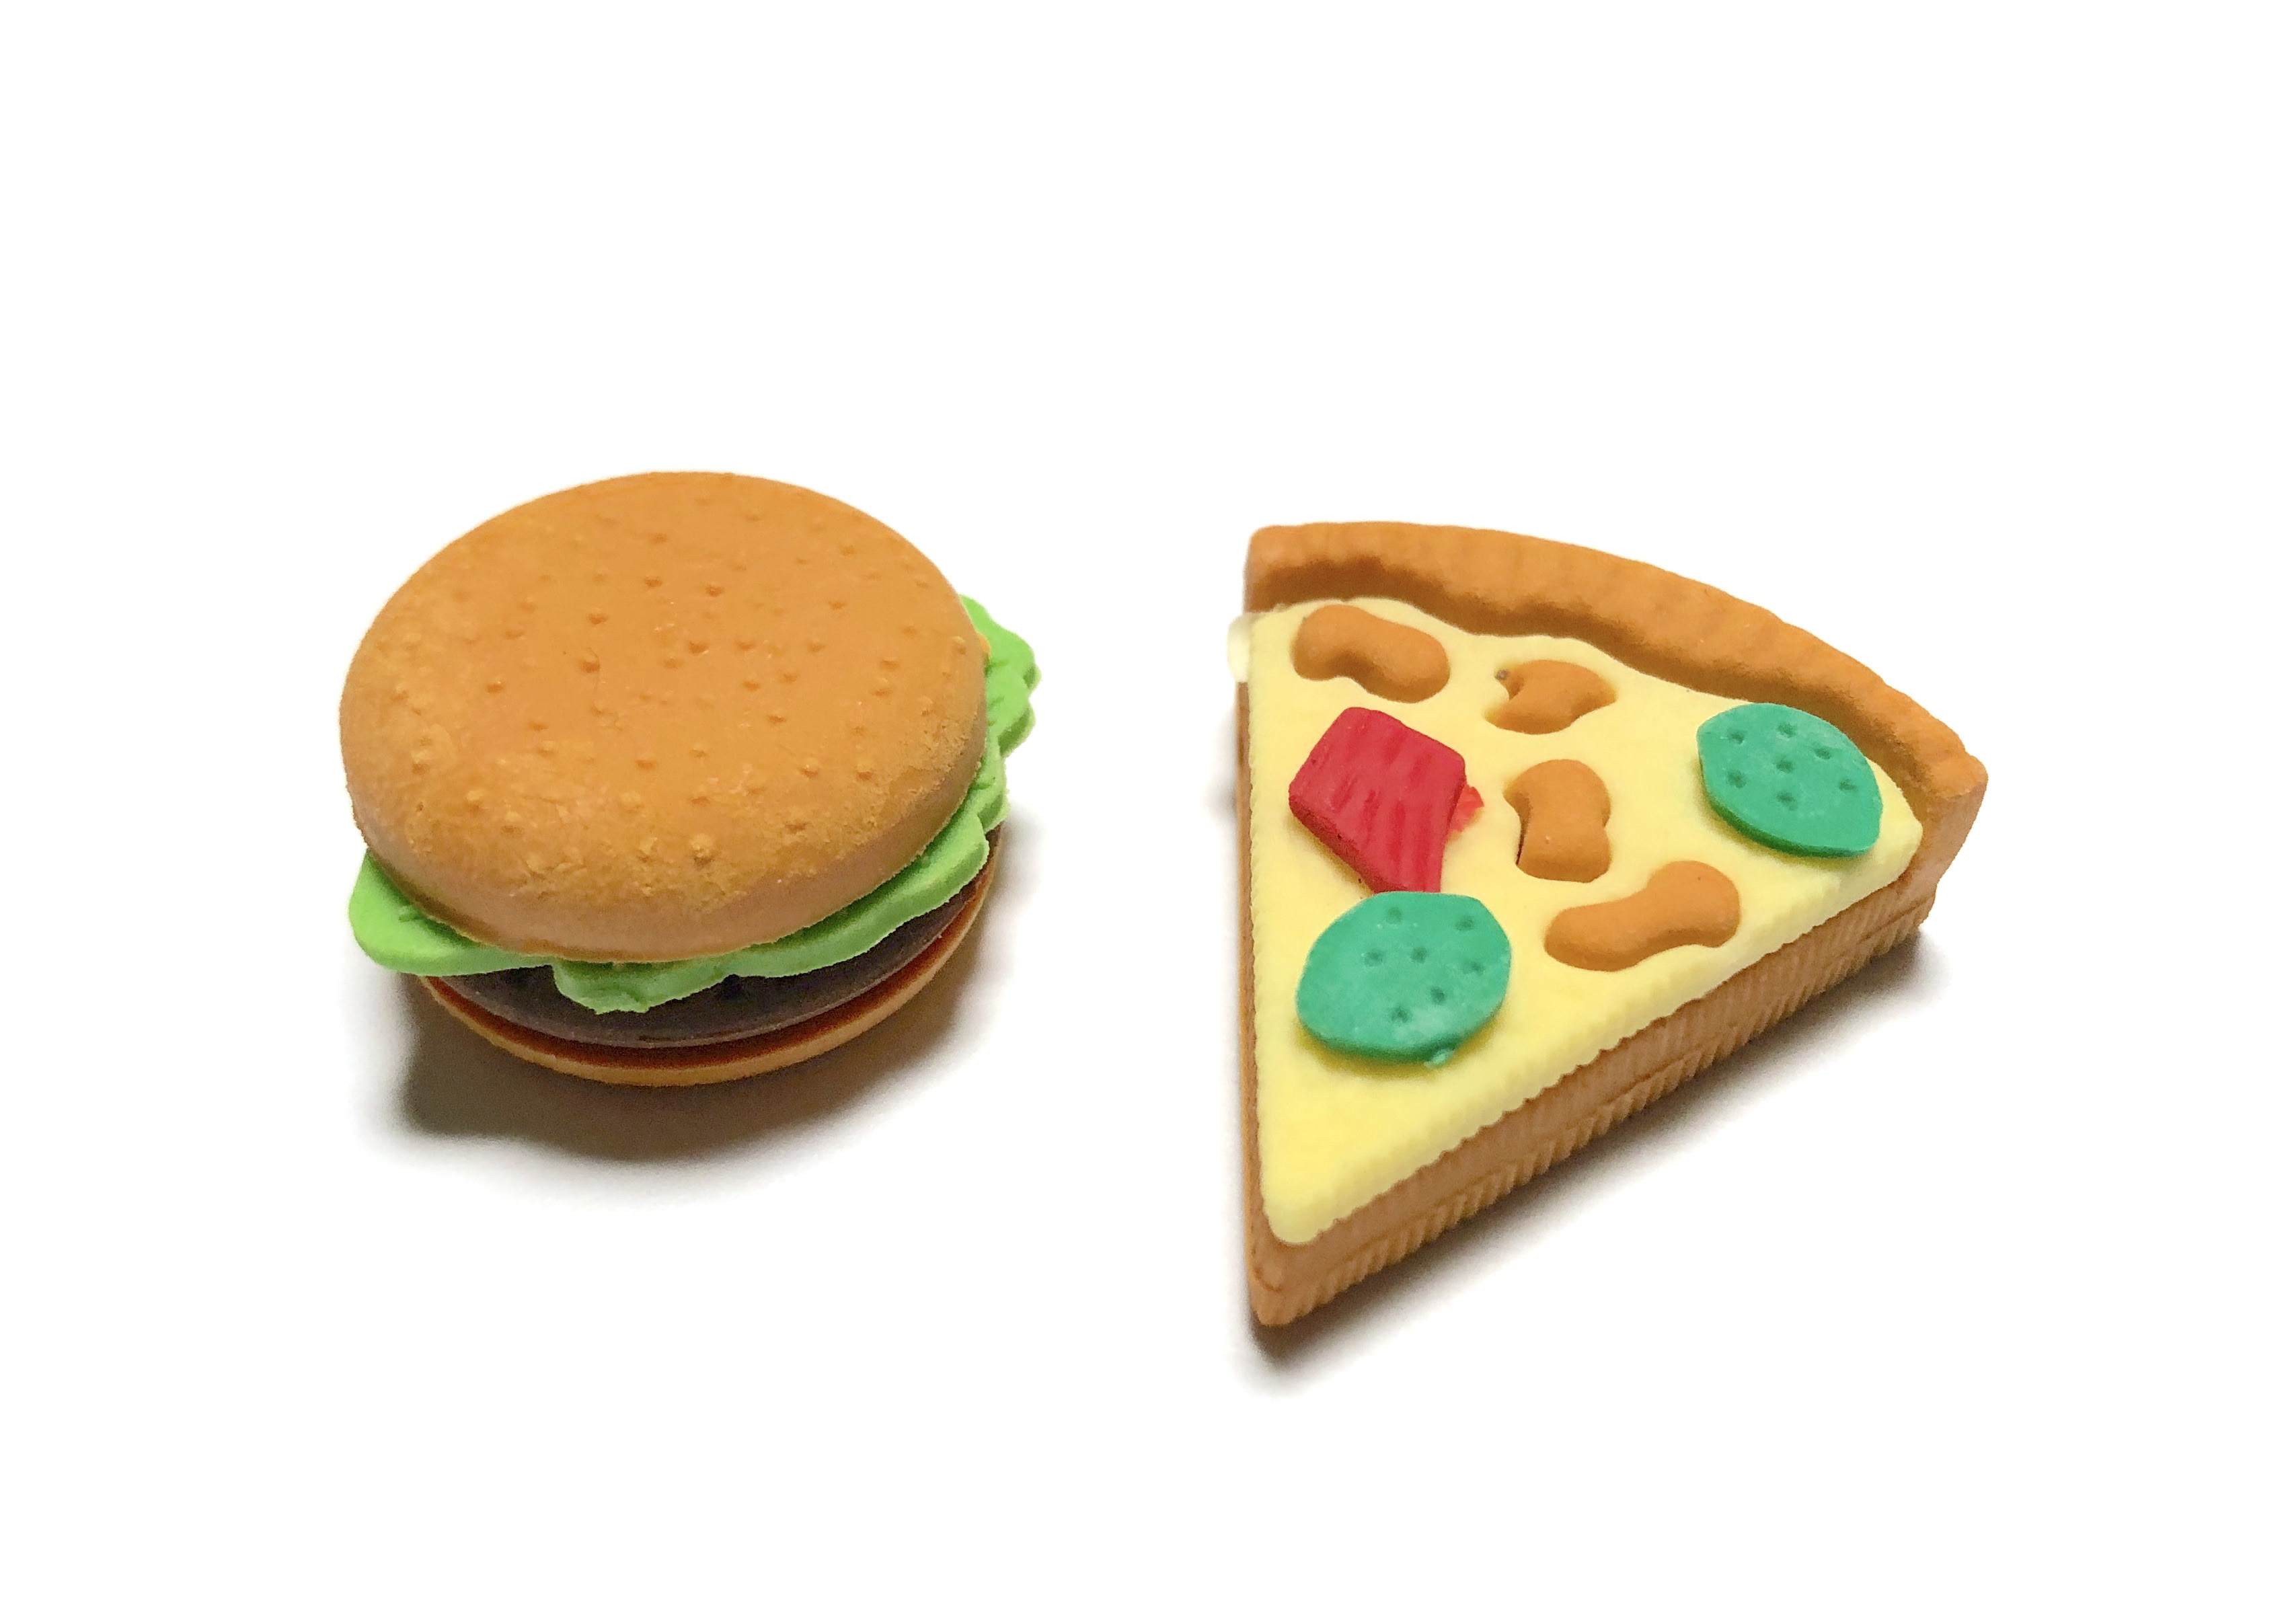 Pizza and Burger Eraser Set